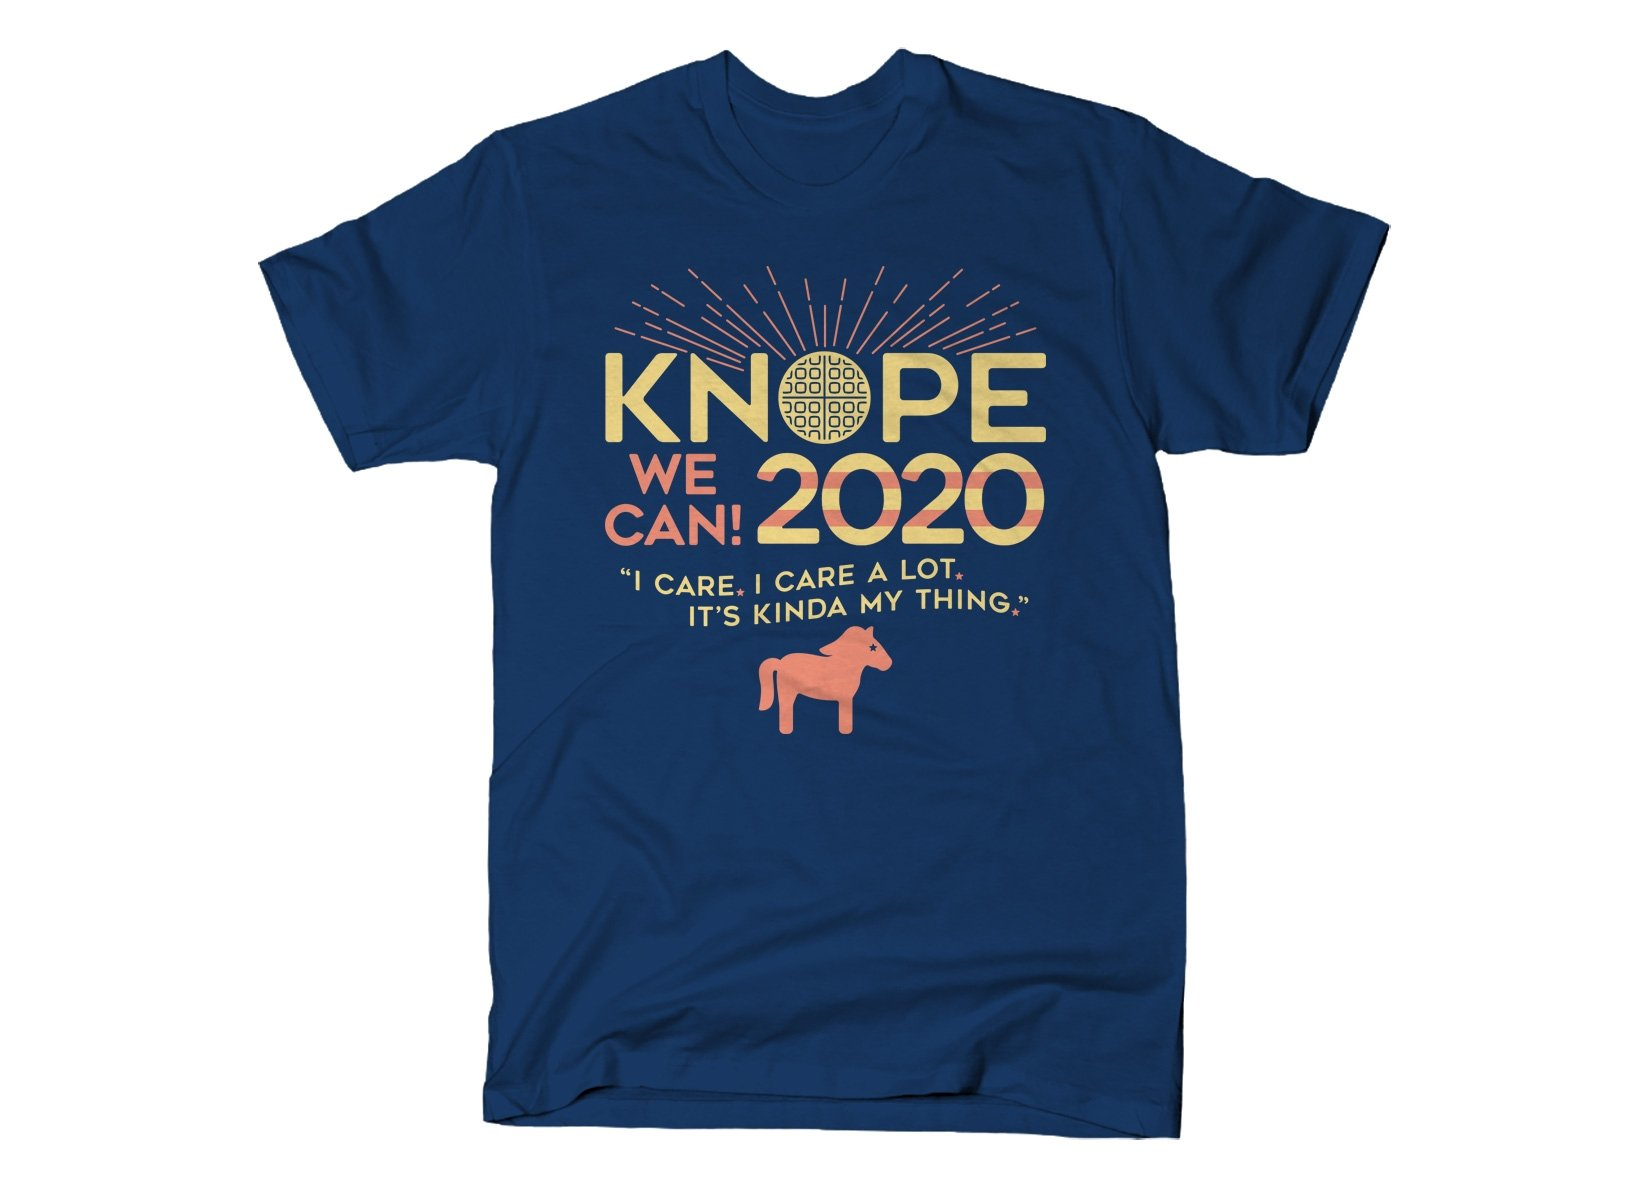 Knope 2020 on Mens T-Shirt